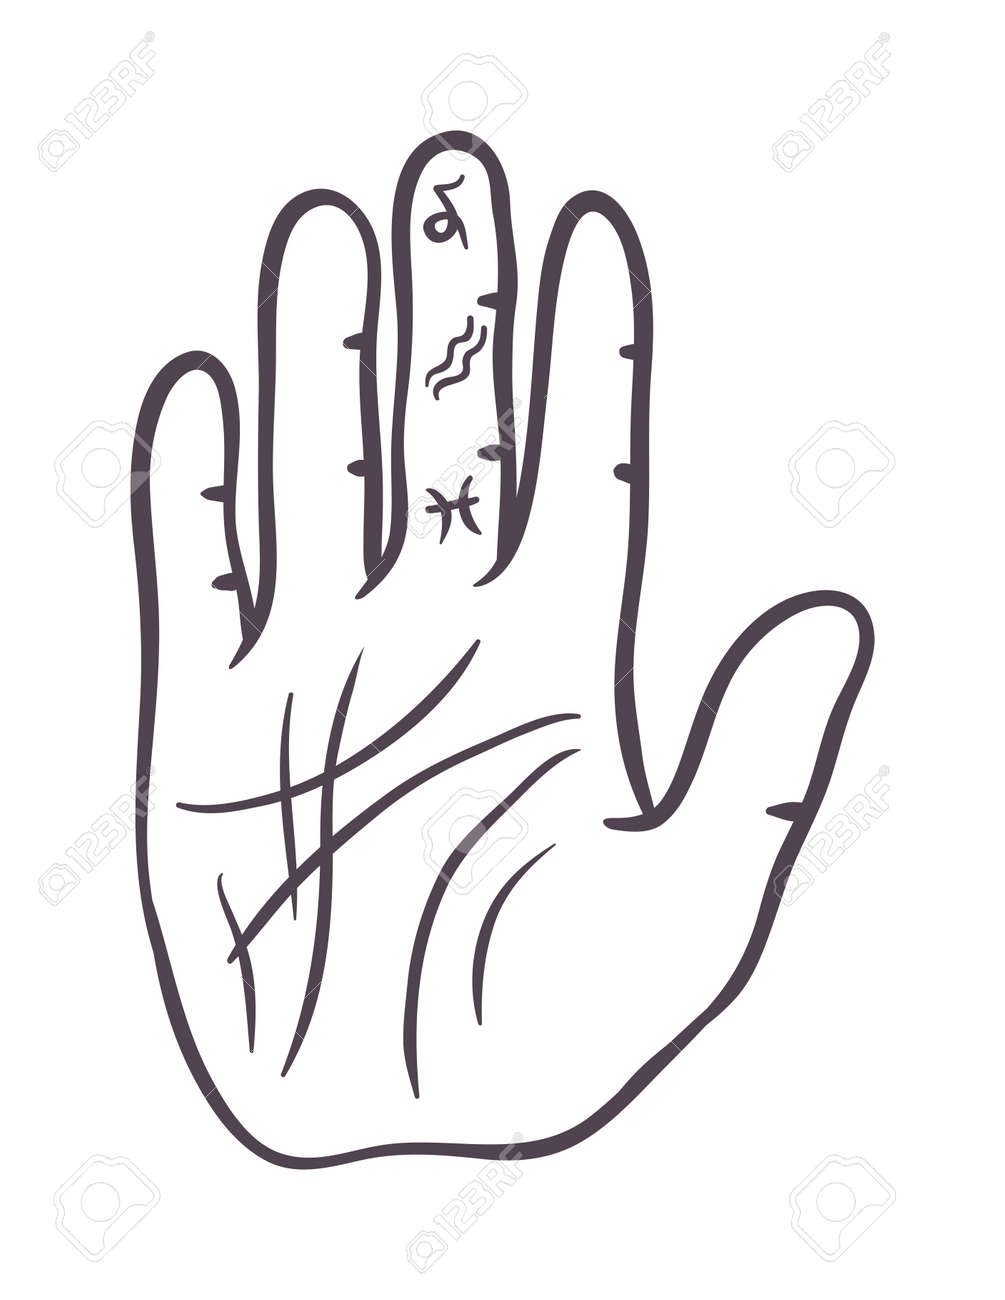 Pencil drawing fist hand sketch gesture vector illustration